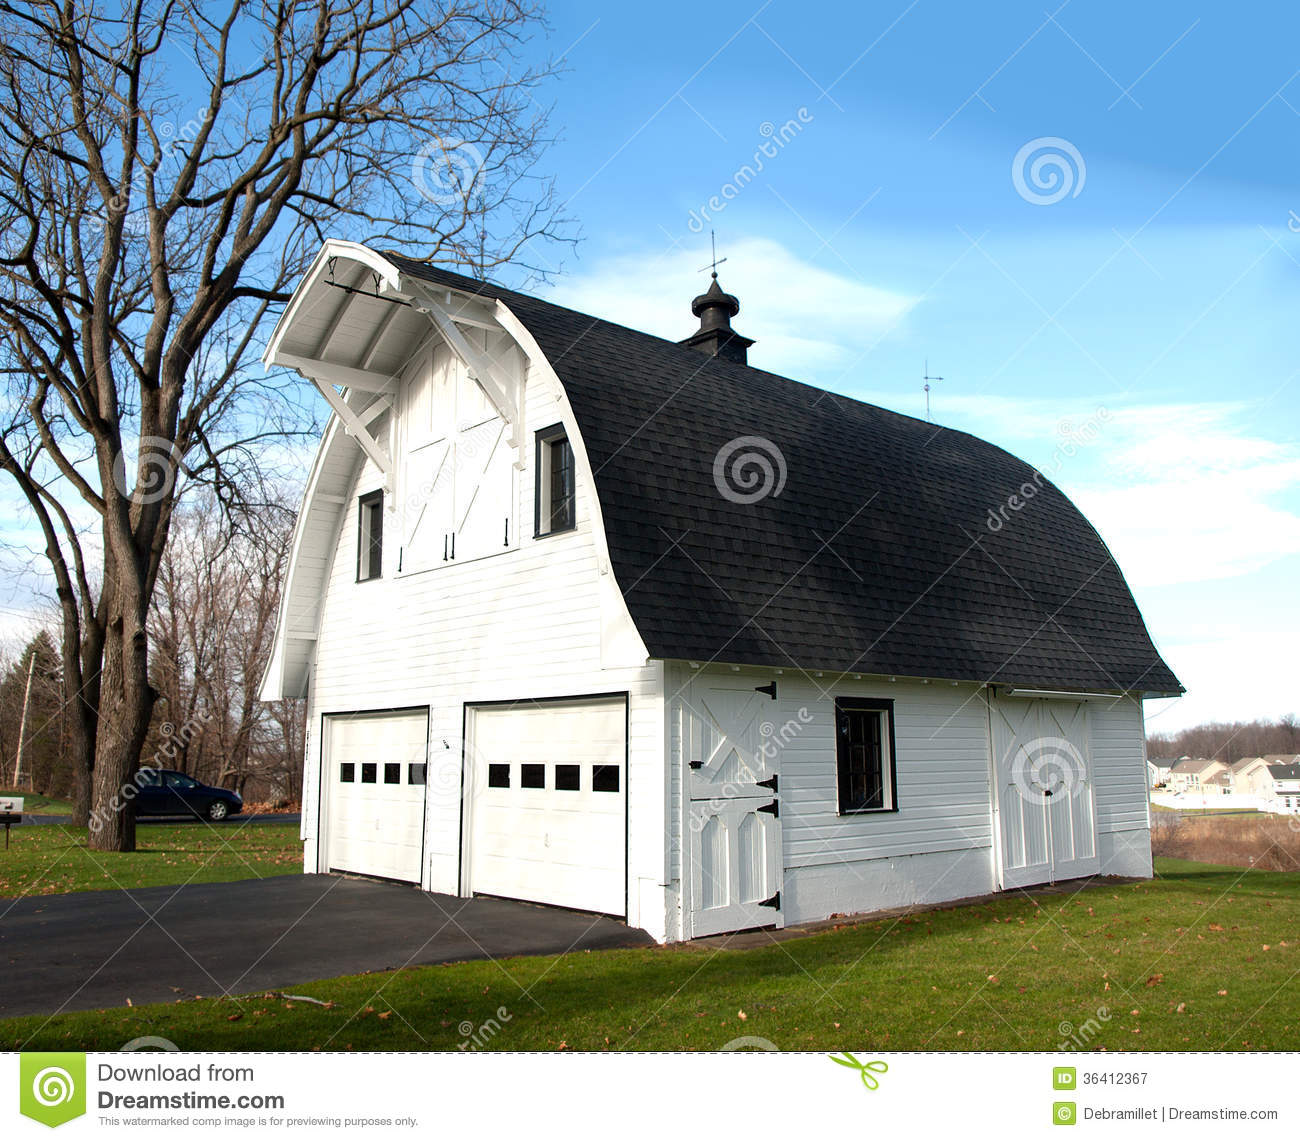 Barn shaped garage royalty free stock photography image for Barn shaped garage